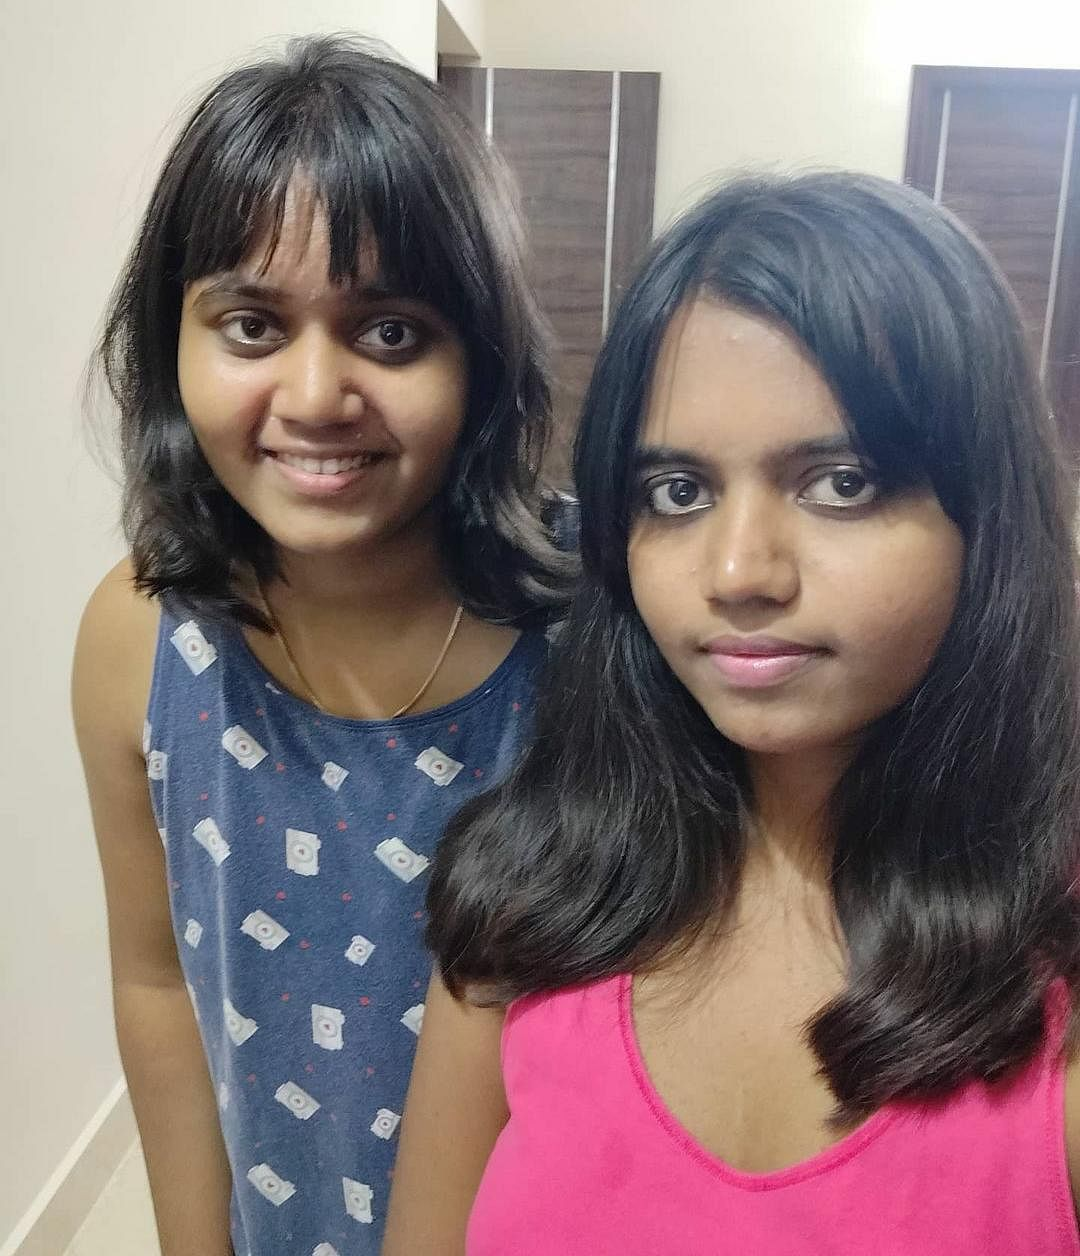 The daughters in another selfie.